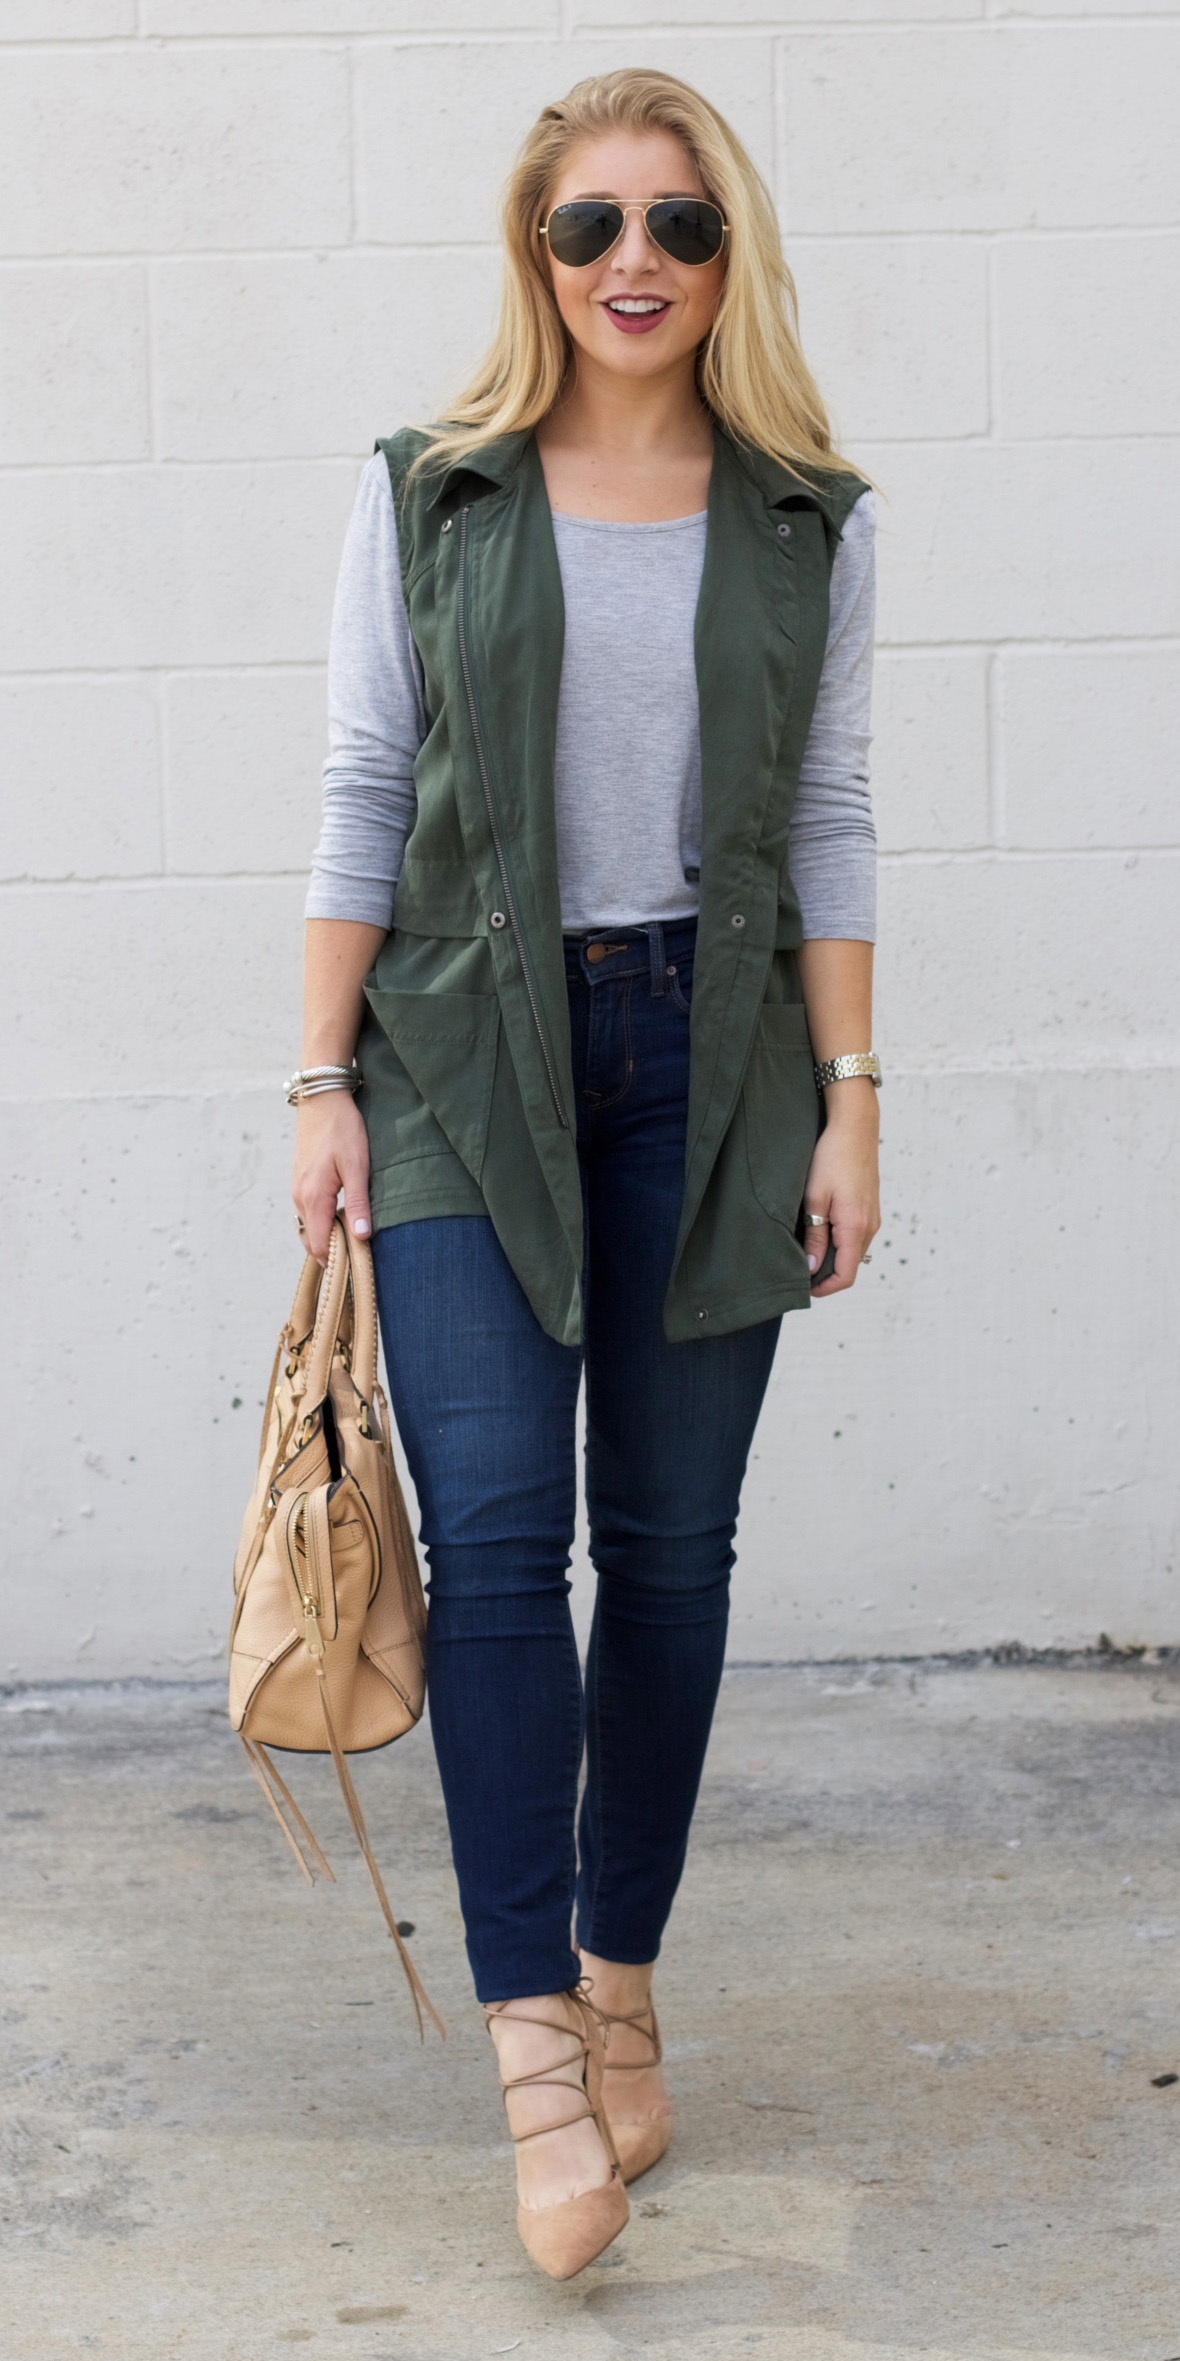 blue-navy-skinny-jeans-grayl-tee-green-olive-vest-utility-blonde-sun-tan-bag-tan-shoe-pumps-fall-winter-lunch.jpg